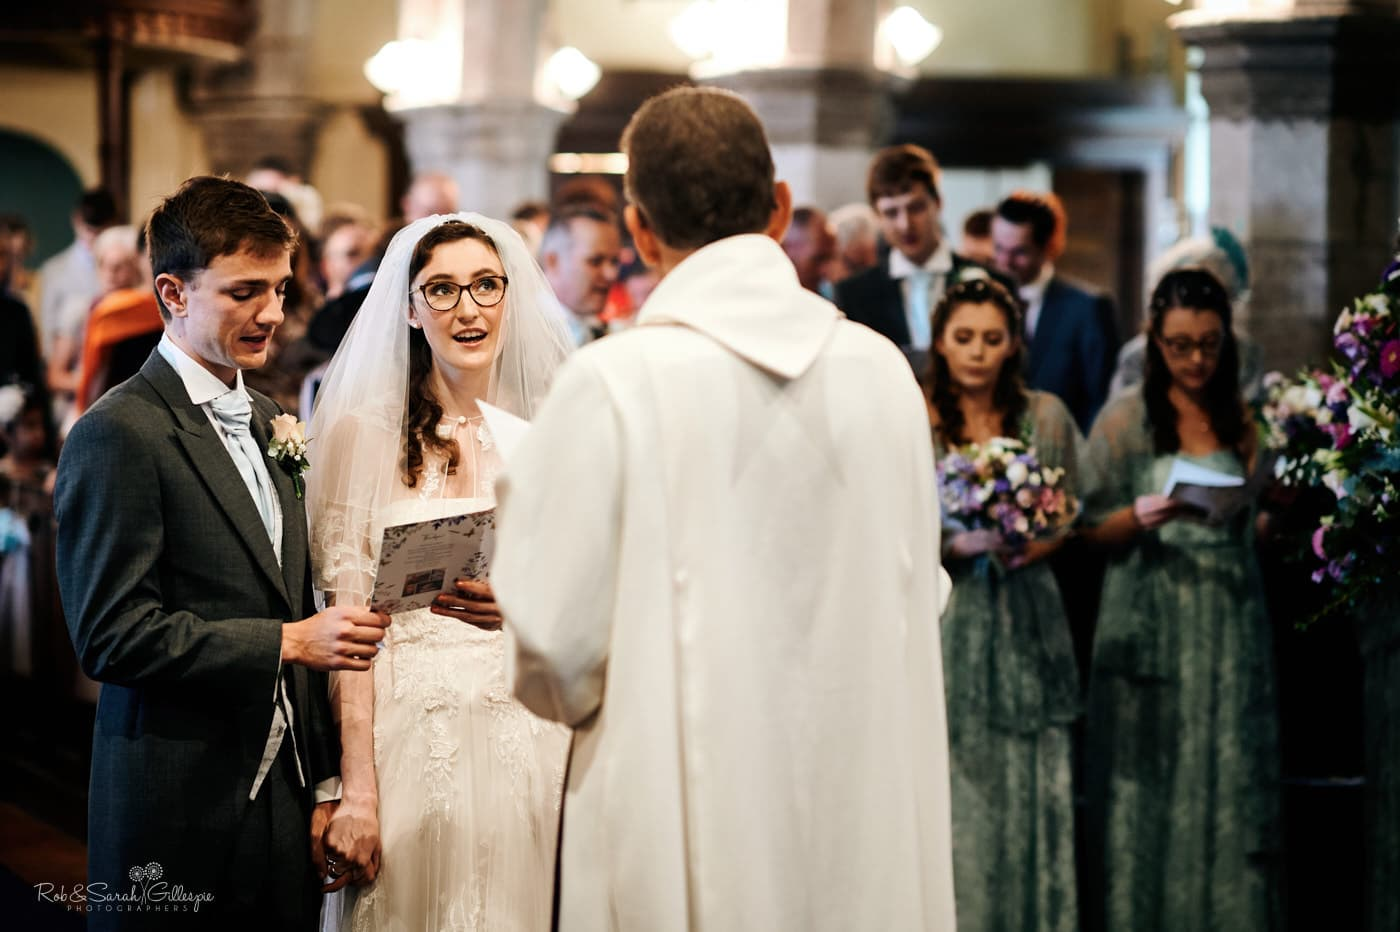 Bride and groom sing hymns during wedding ceremony